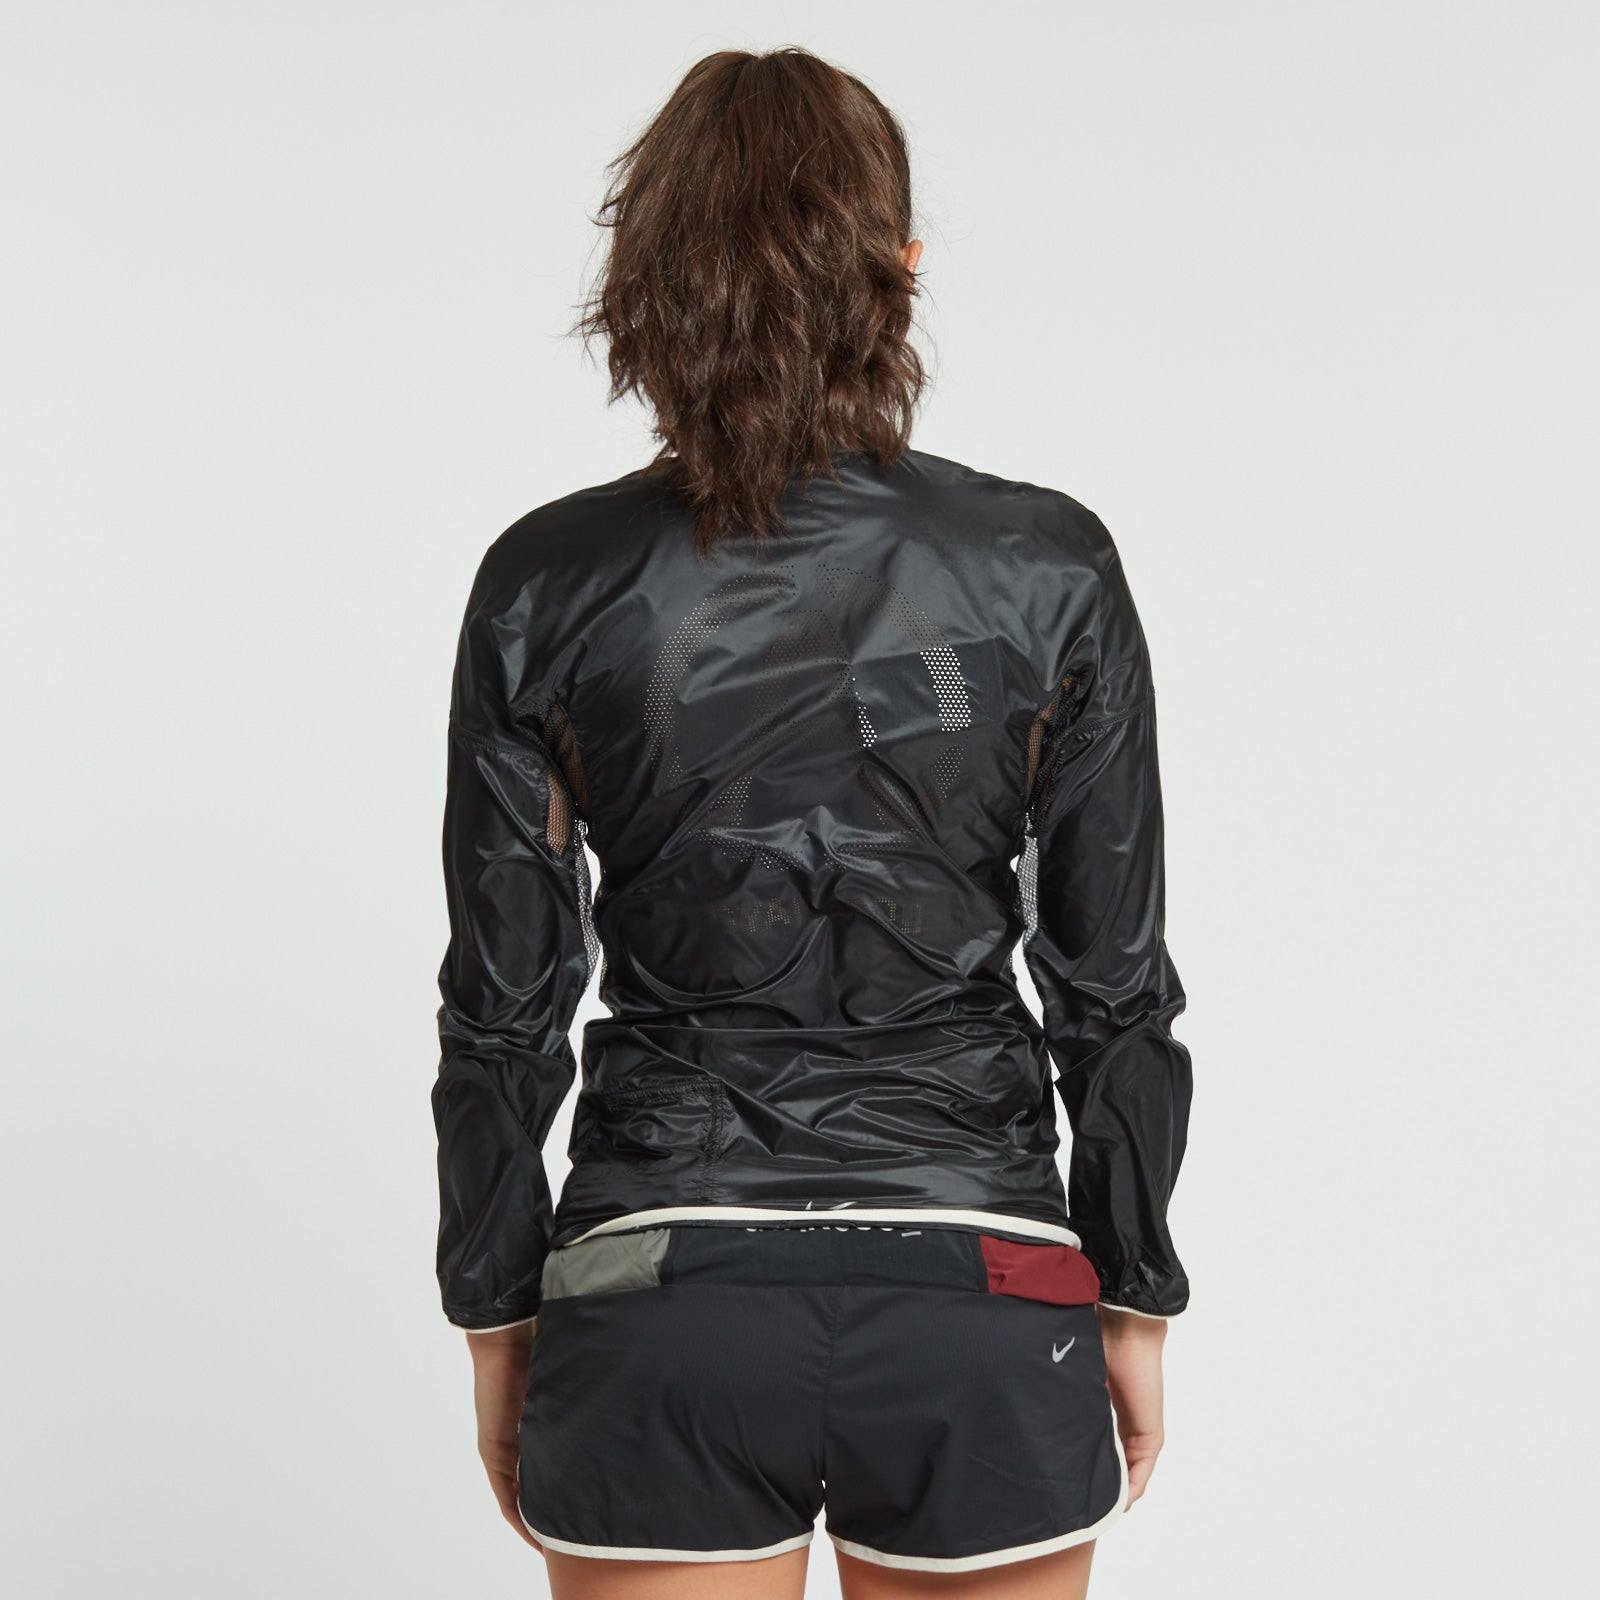 Womens NikeLab x GYAKUSOU Packable Jacket.    910885-010